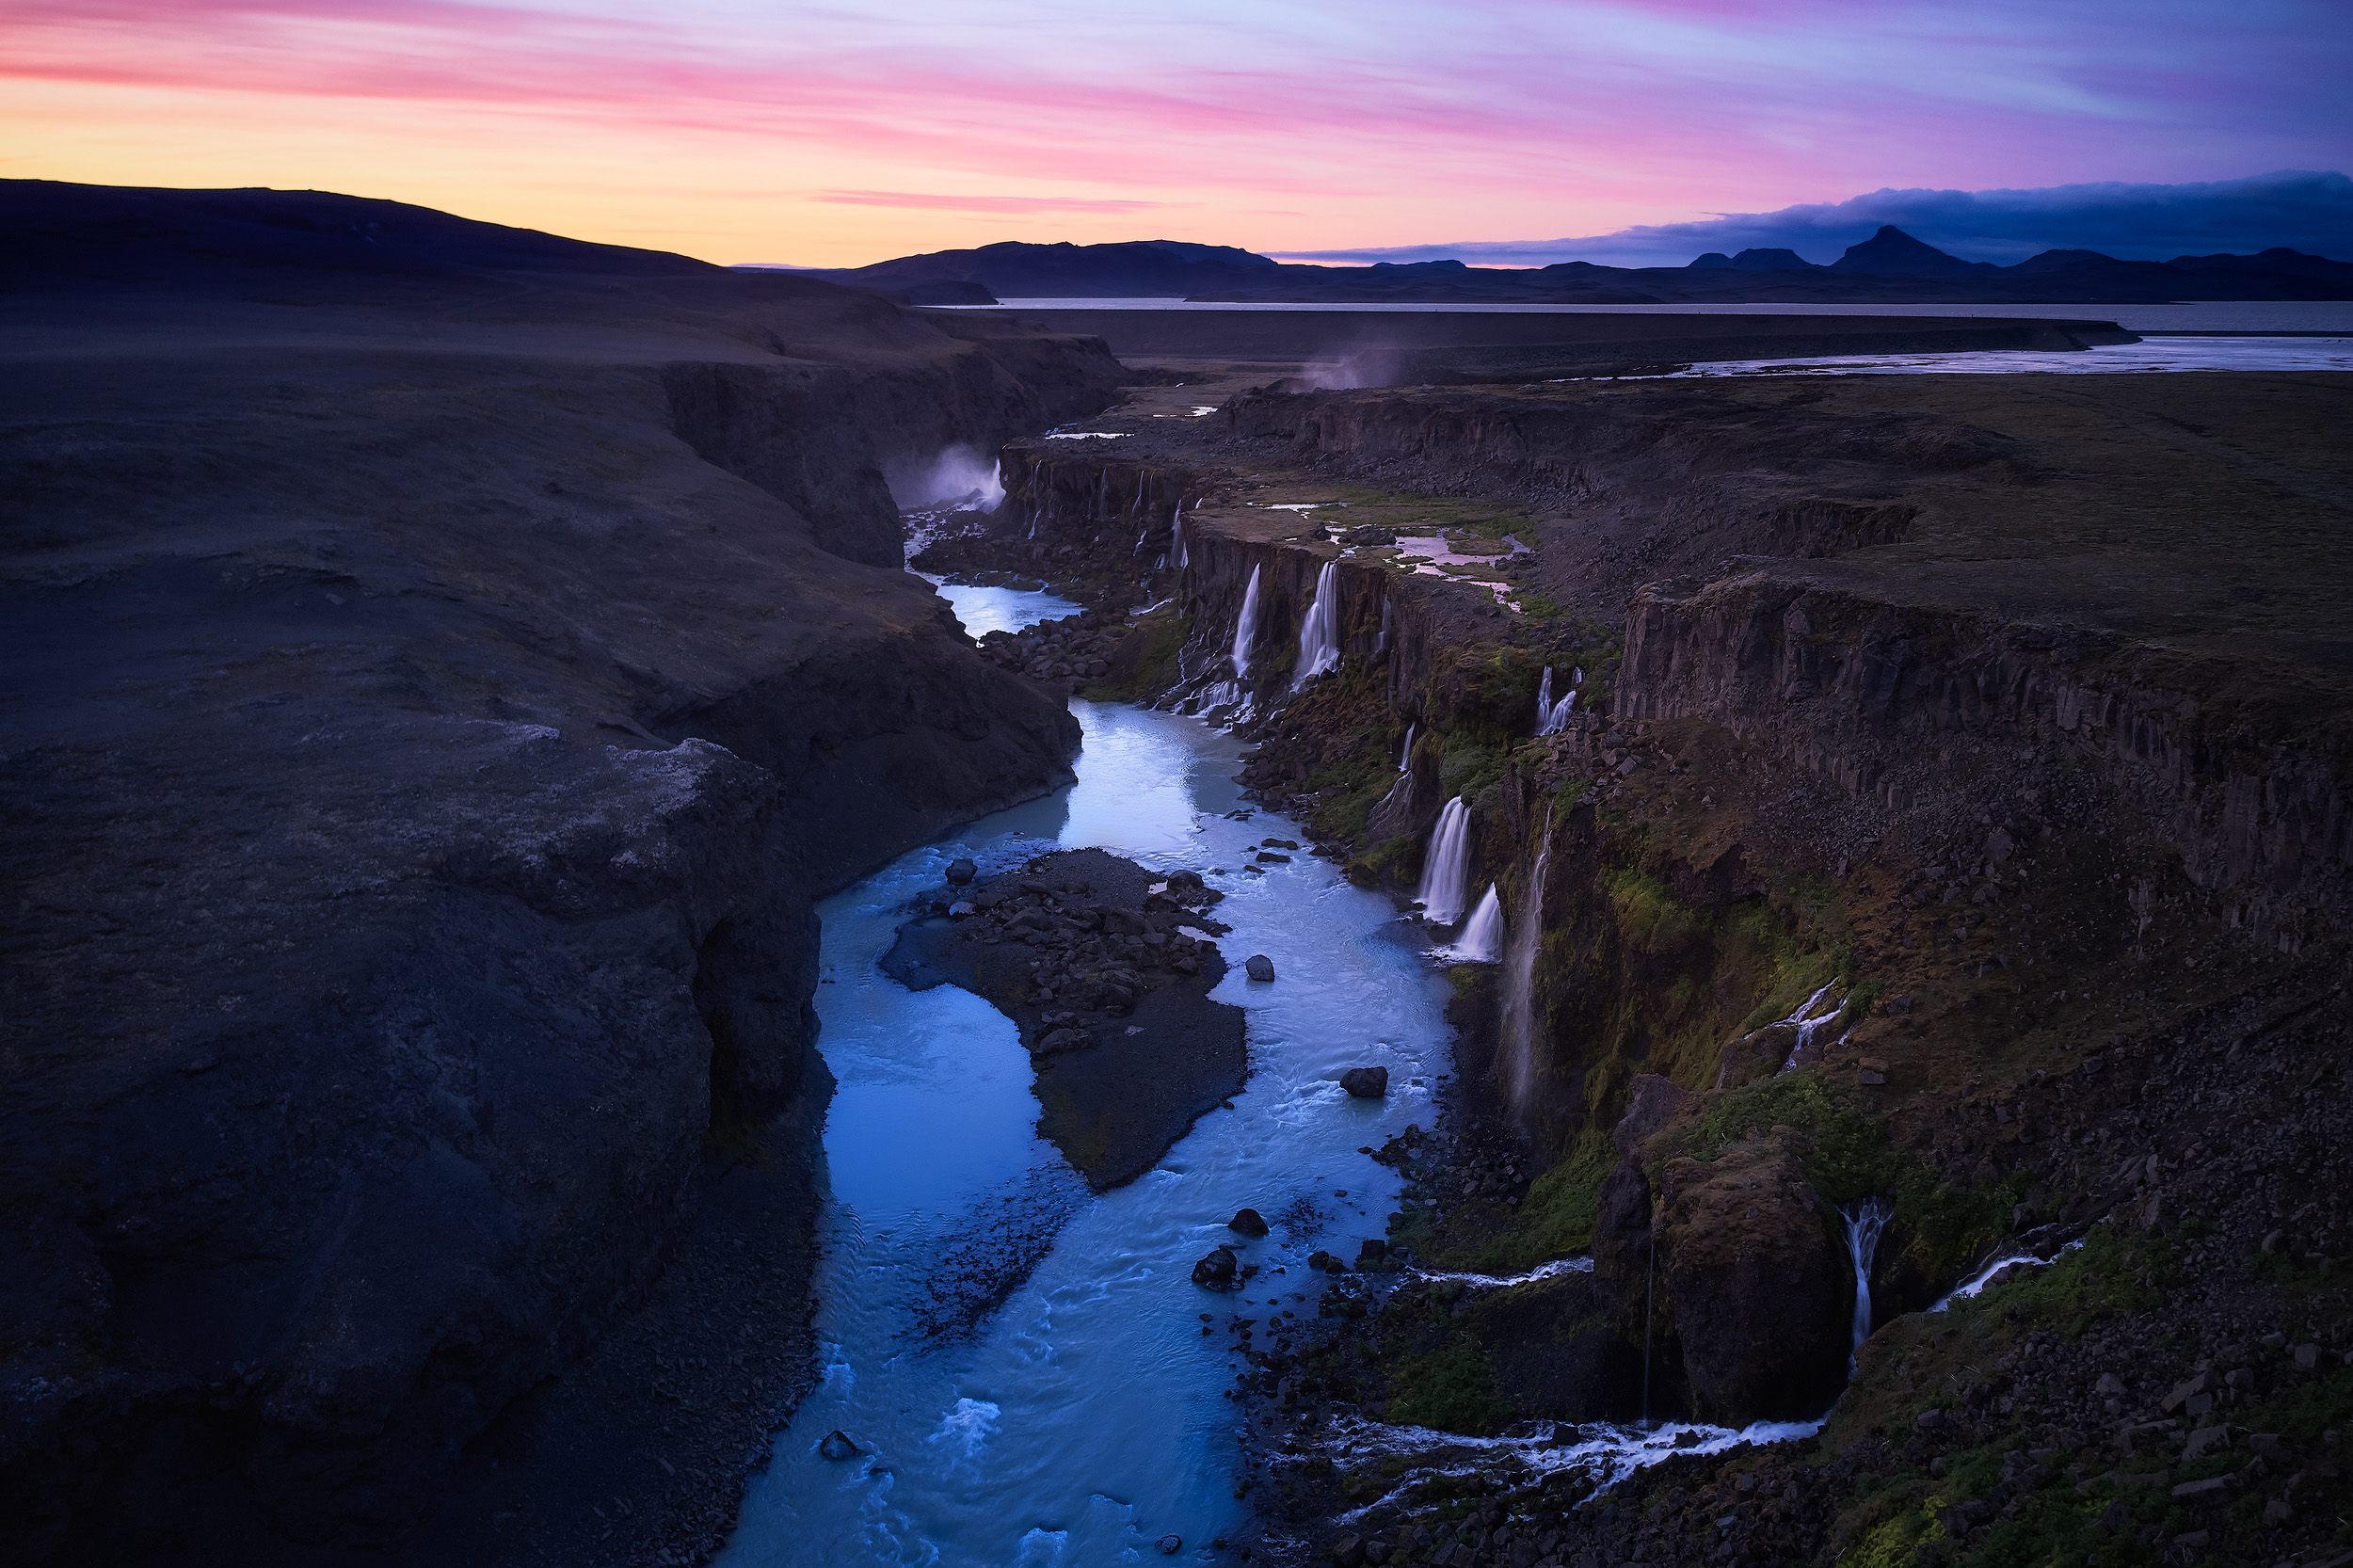 Sigöldugljufur  The water falls in multiple streams as this river is split on it's passage across the plains of Iceland's highlands before collecting again into this beautiful coloured river.